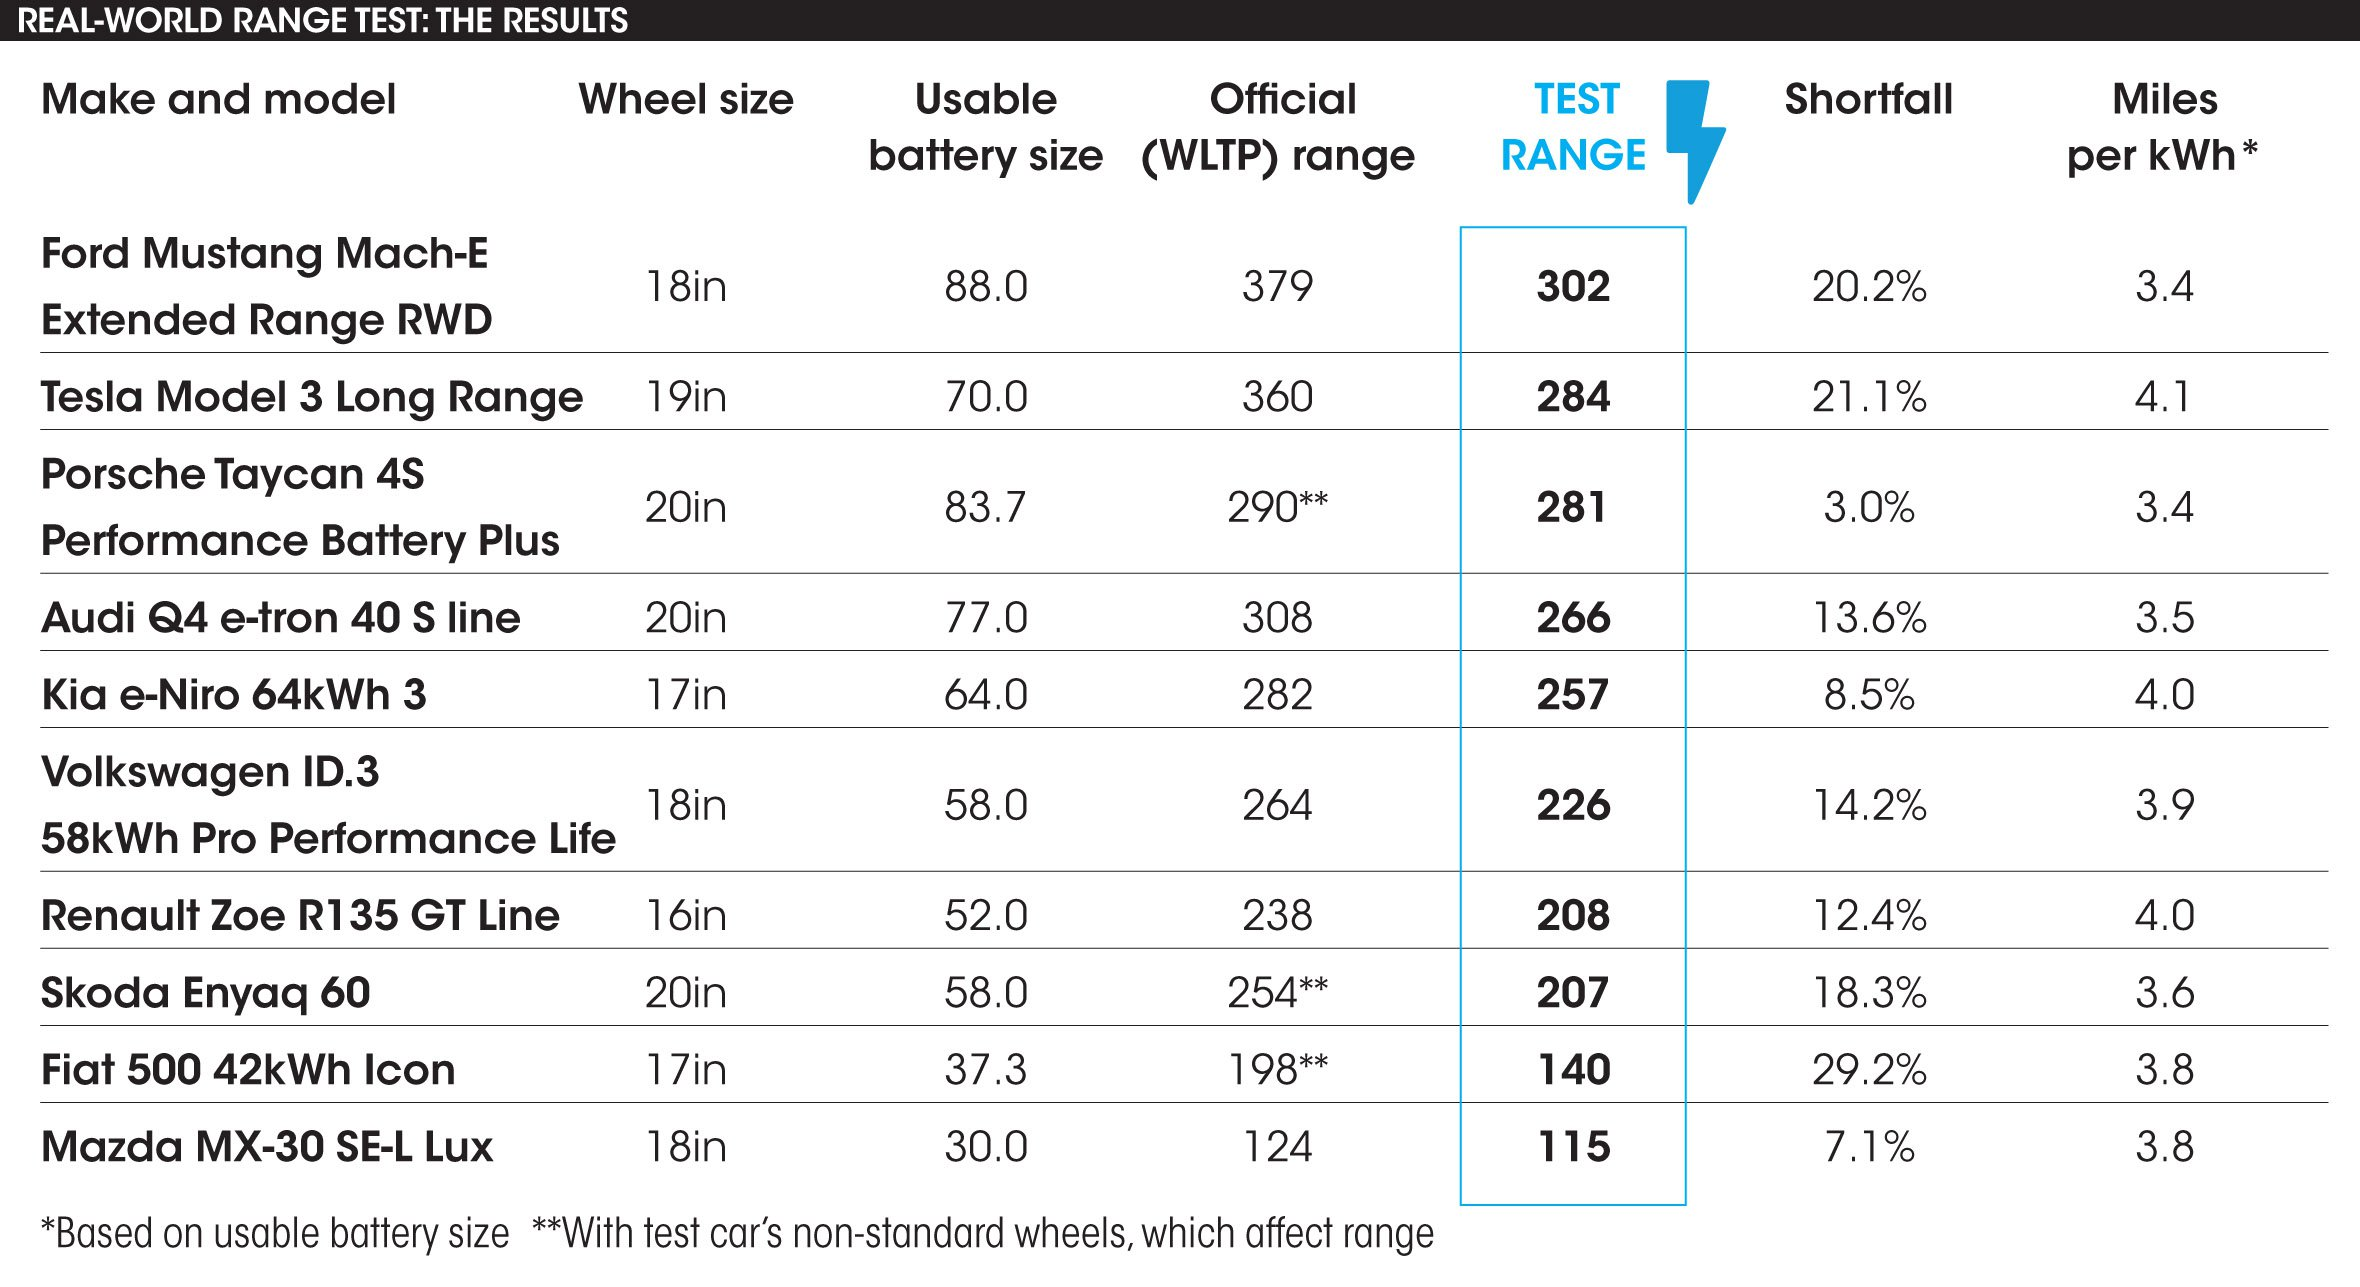 Electric car range test results table